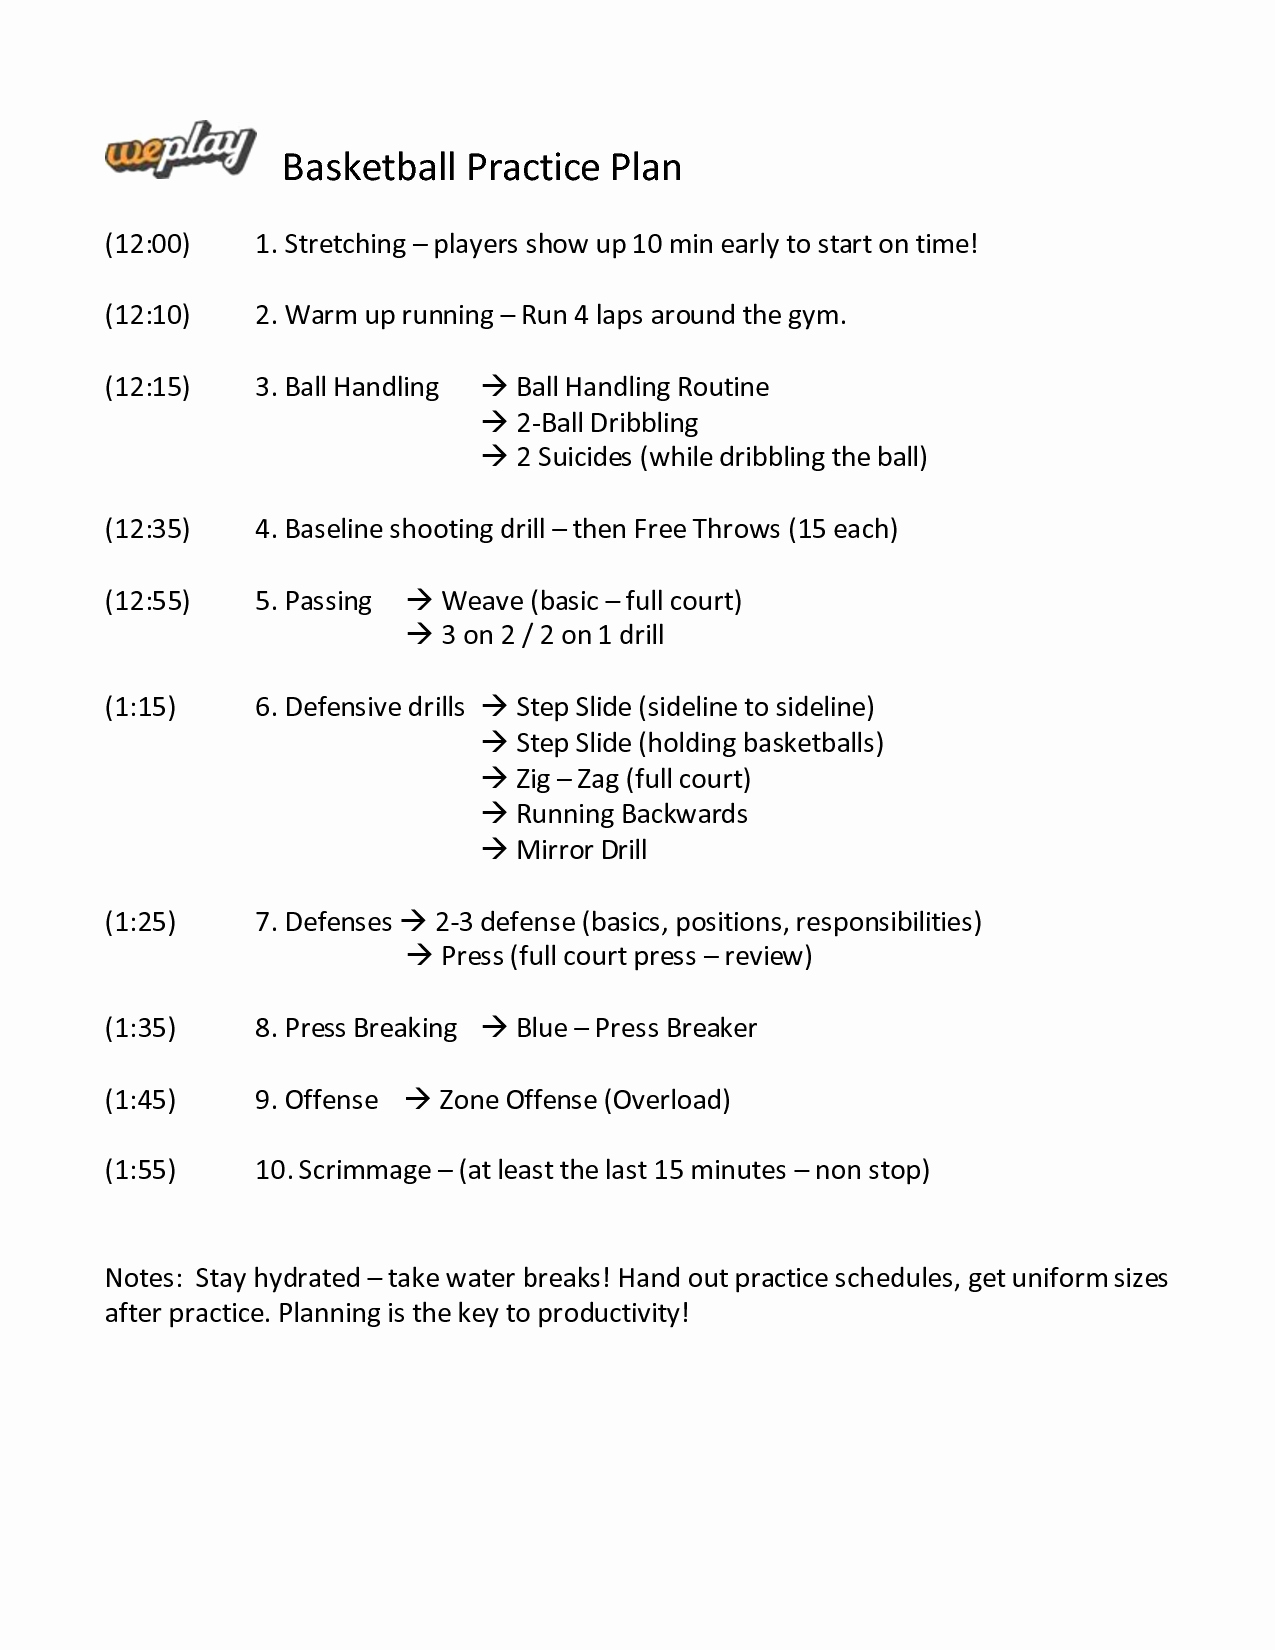 Basketball Practice Plans Template Fresh Basketball Practice Plan Template